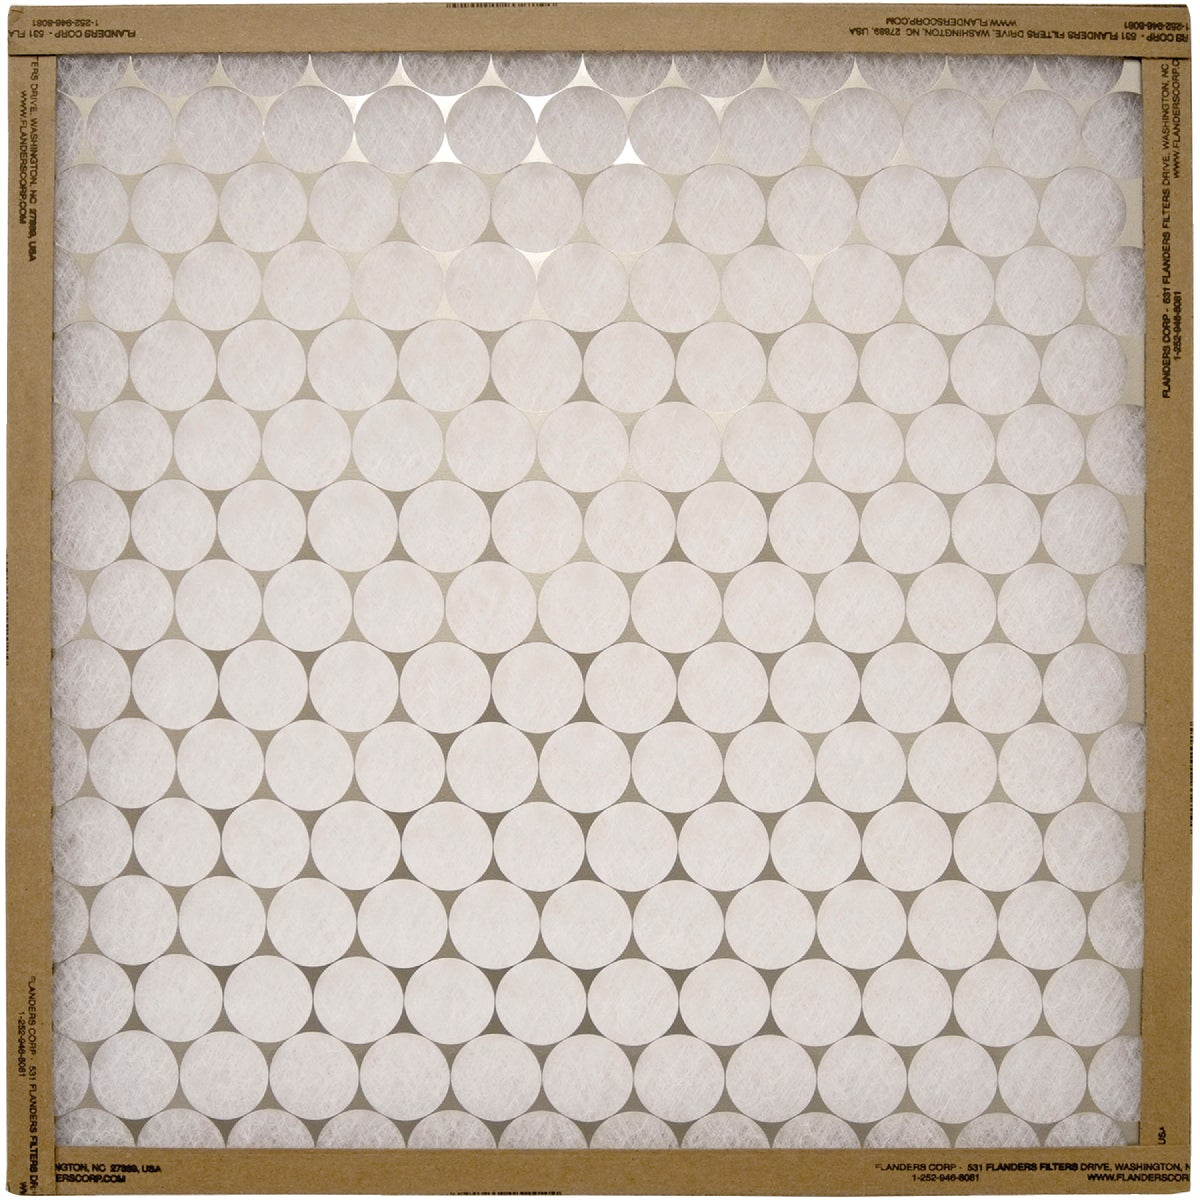 14X30 FURNACE FILTER - 10255.011430 by Flanders Corp